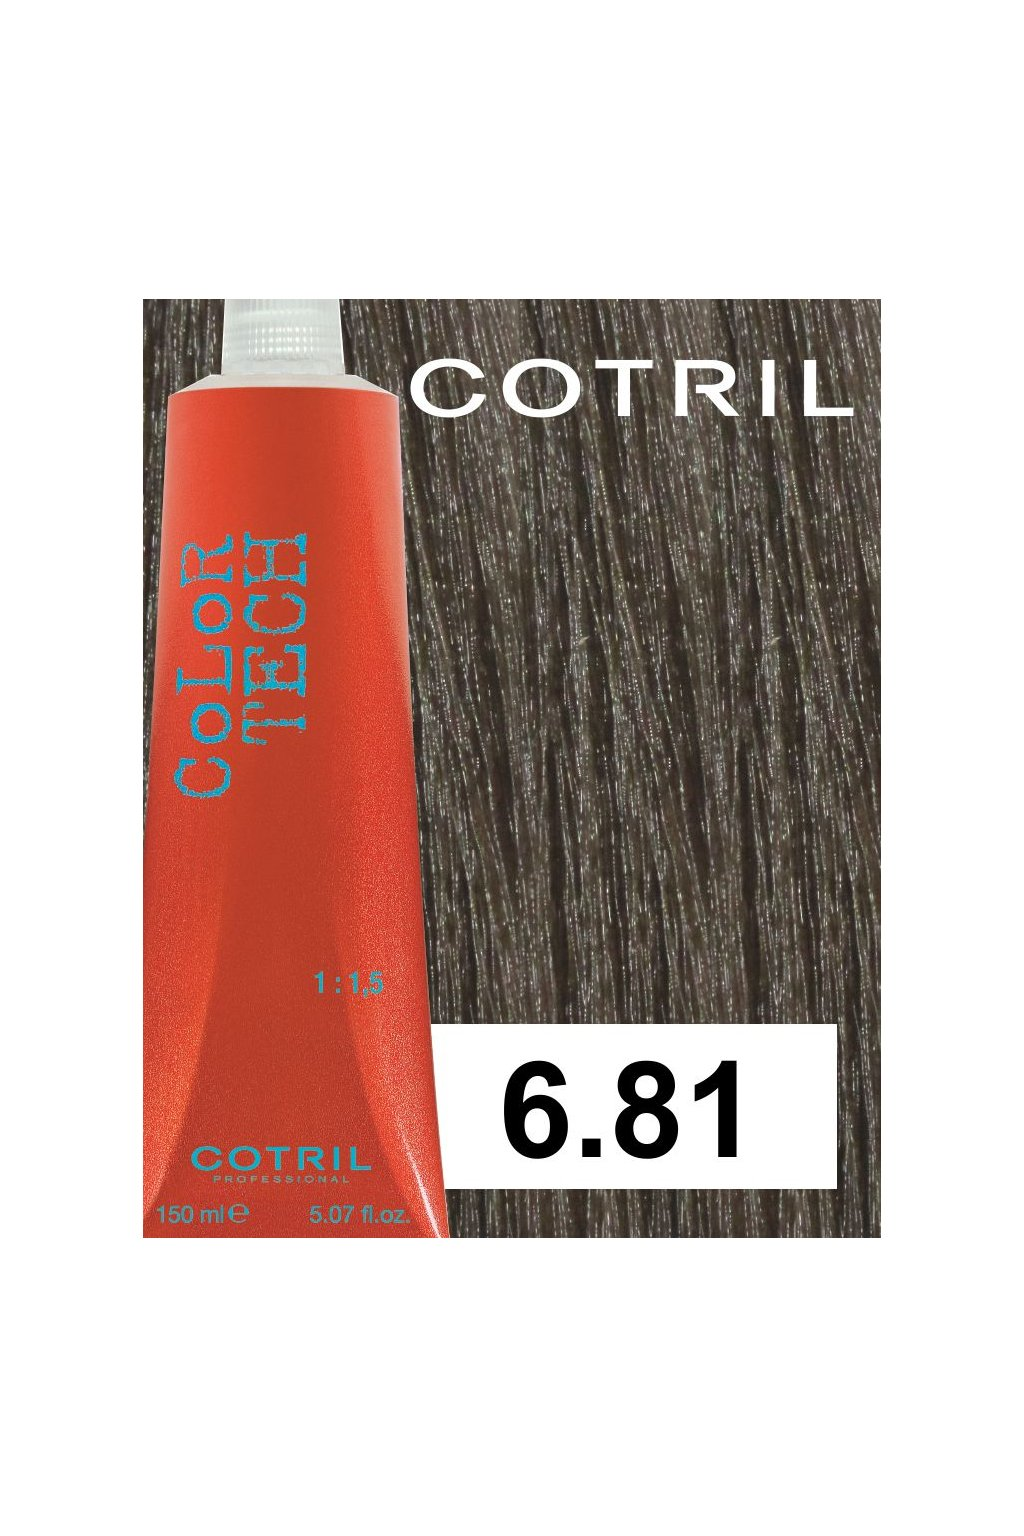 6 81 ct cotril